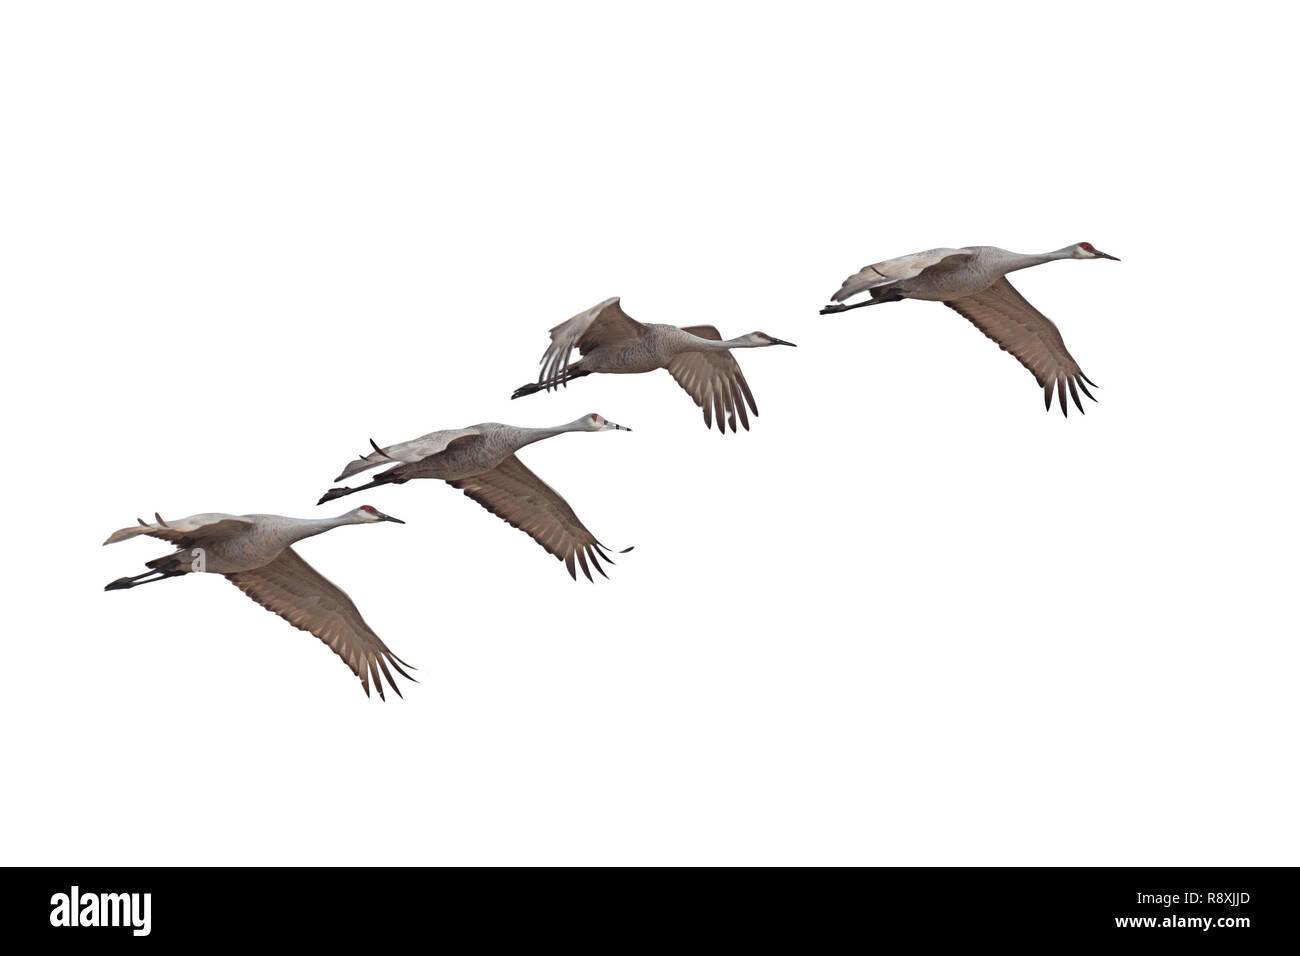 Sandhill cranes fly across a white background. - Stock Image